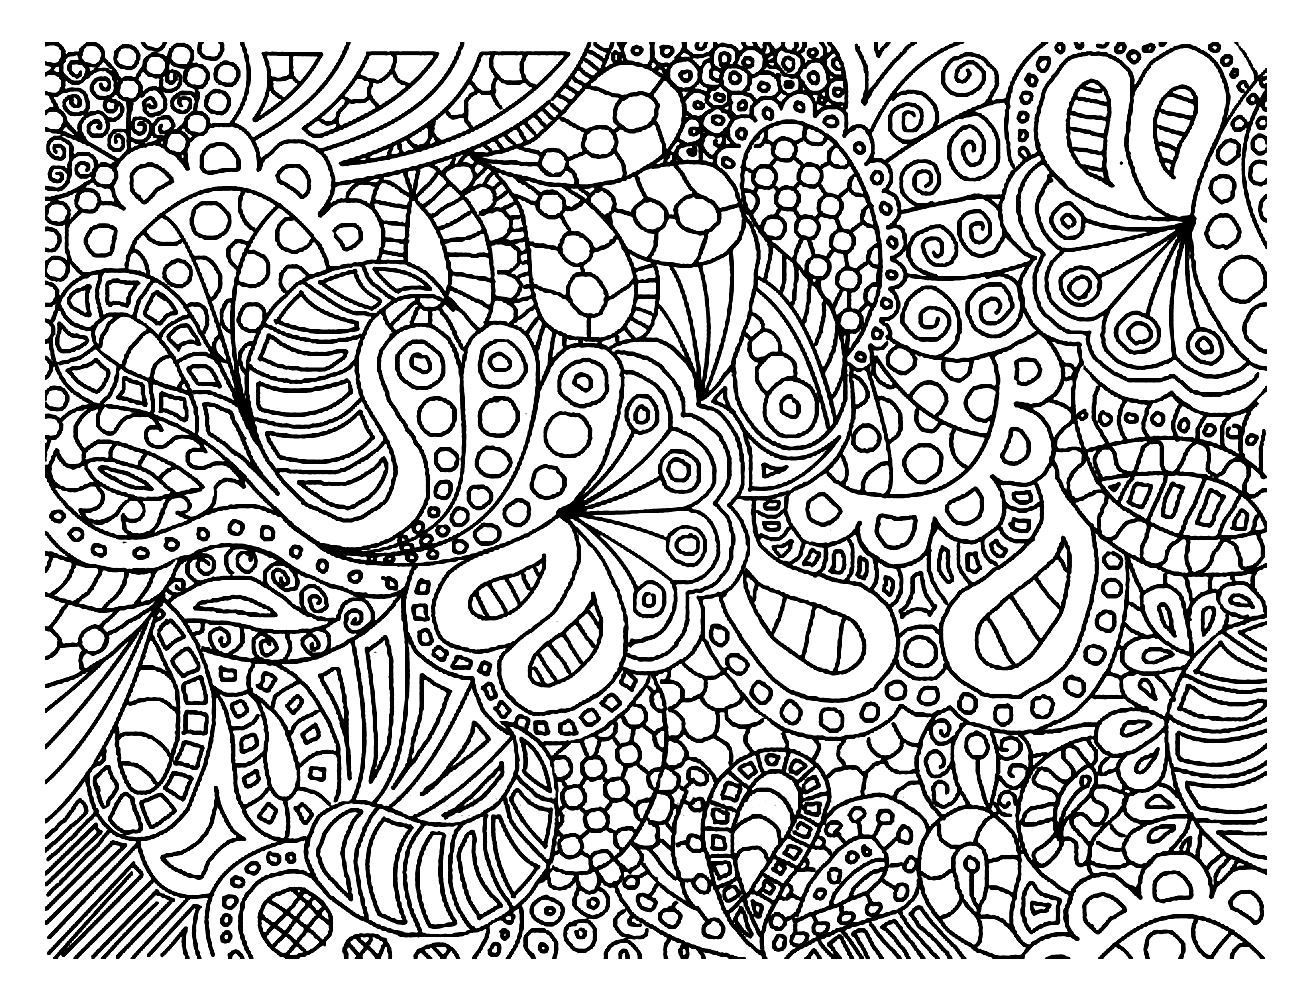 Free coloring page coloring-doodle-art-doodling-2. Doodling is cool ...